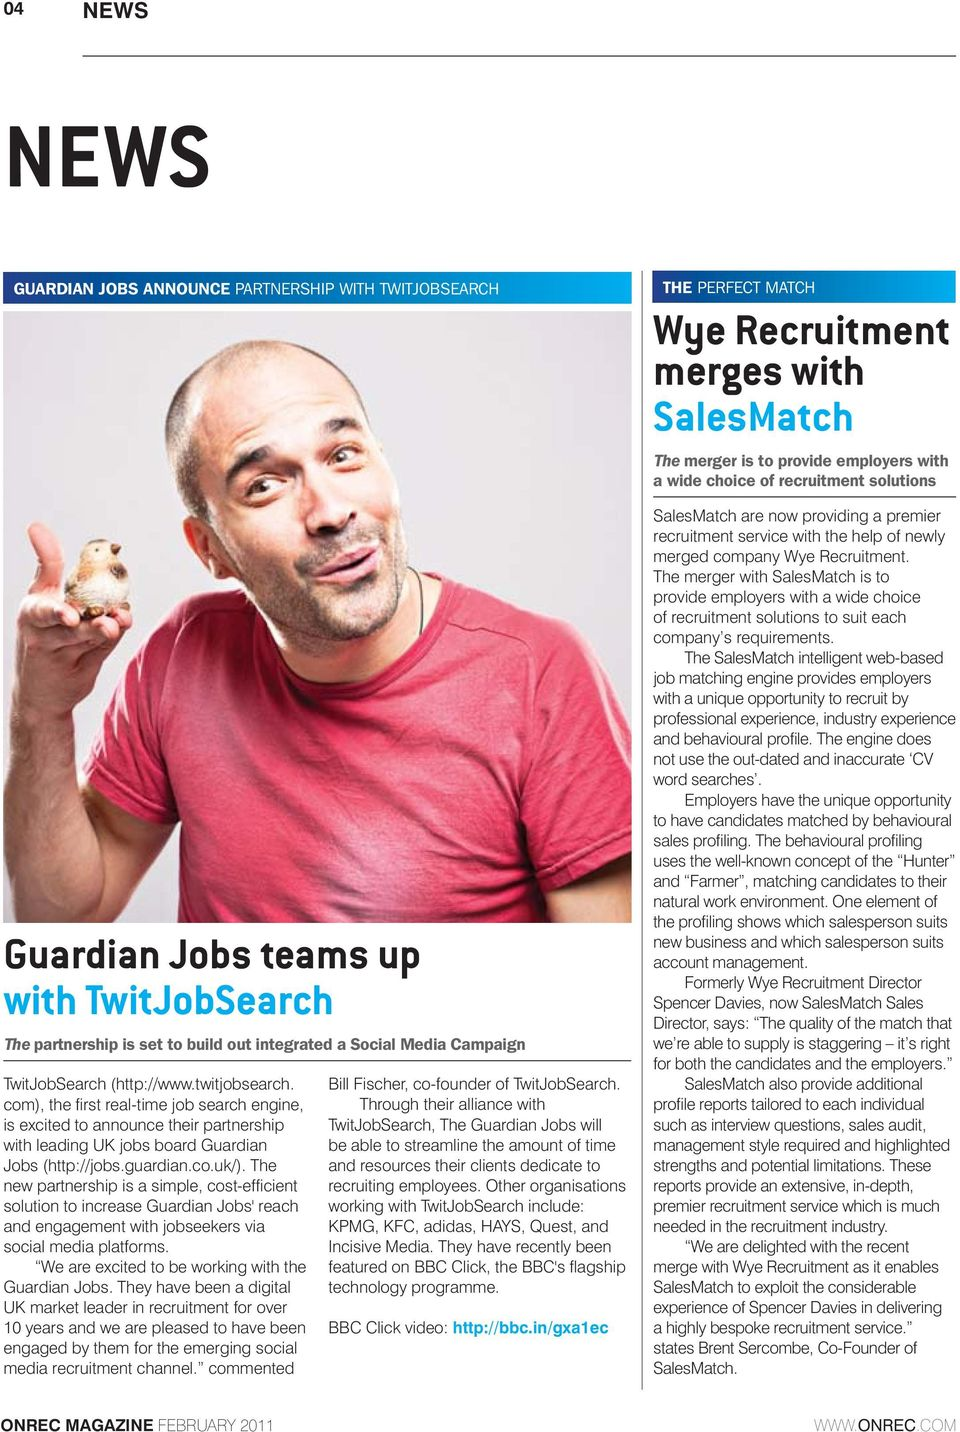 The new partnership is a simple, cost-efficient solution to increase Guardian Jobs' reach and engagement with jobseekers via social media platforms.